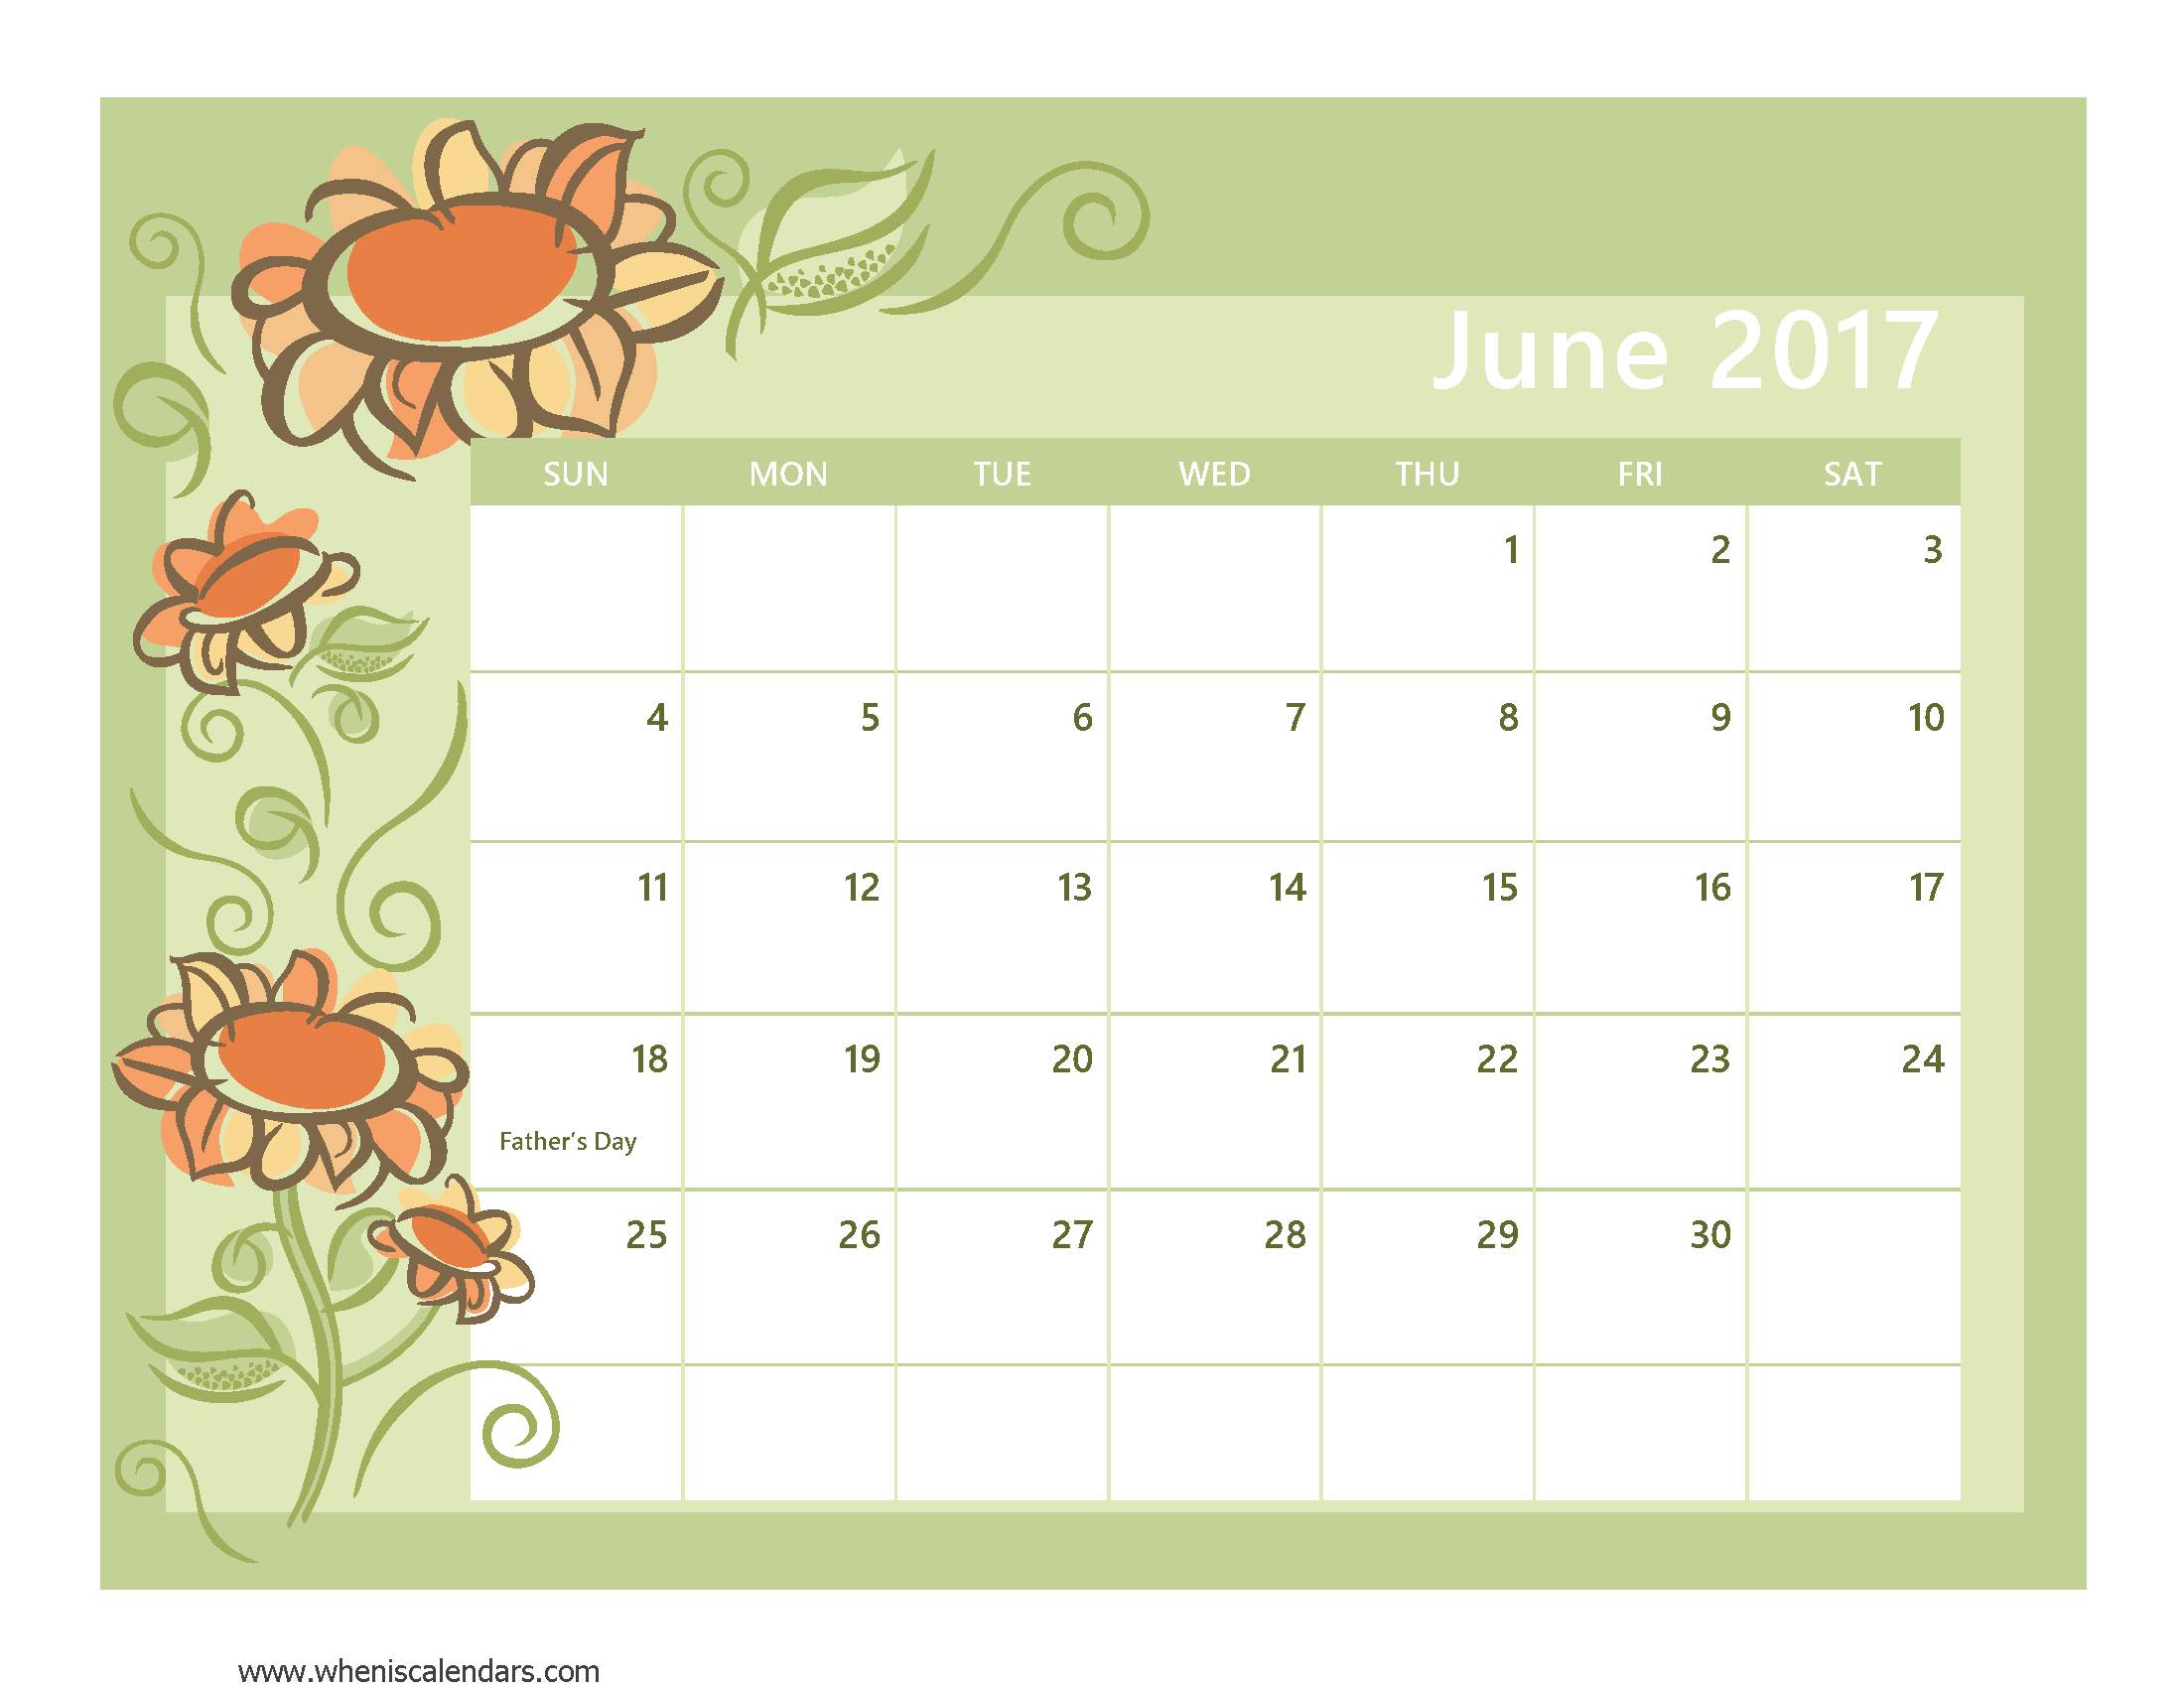 Blank June 2017 Calendar Templates Printable with Notes PDF Excel